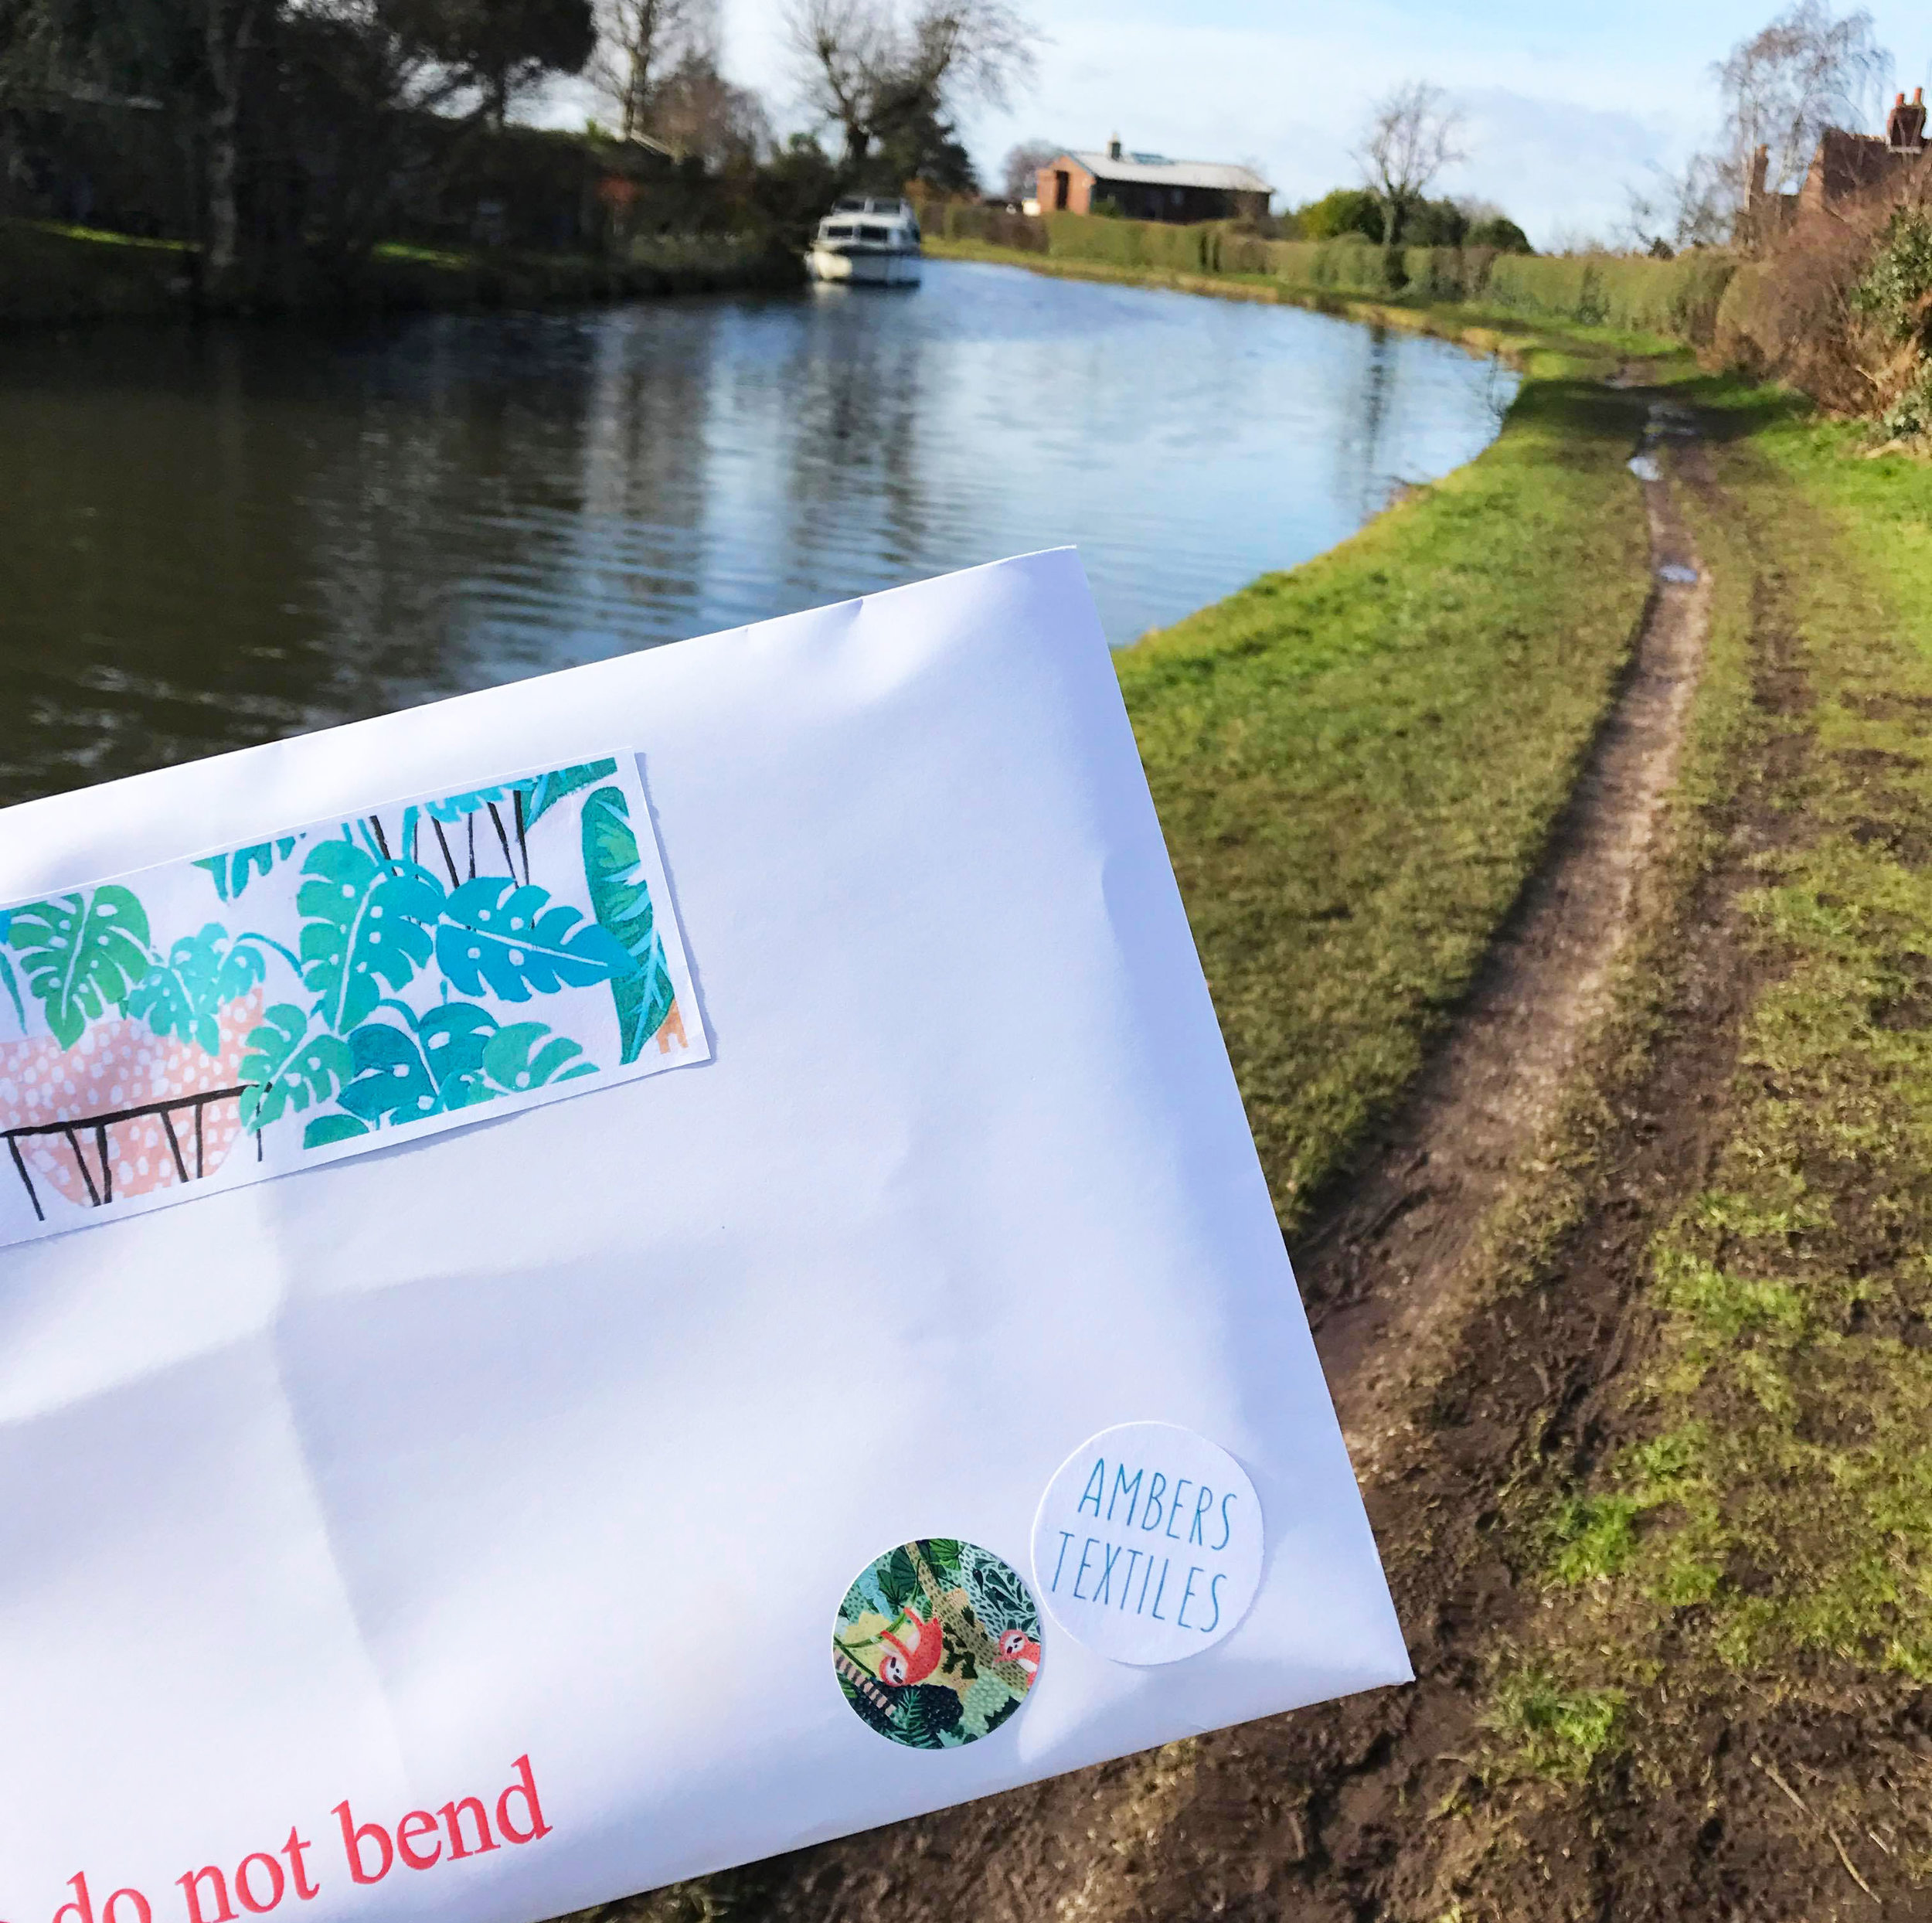 11:30 am - Post Office time! Its sunny today so I decided to take the scenic route today down the Bridgwater canal.